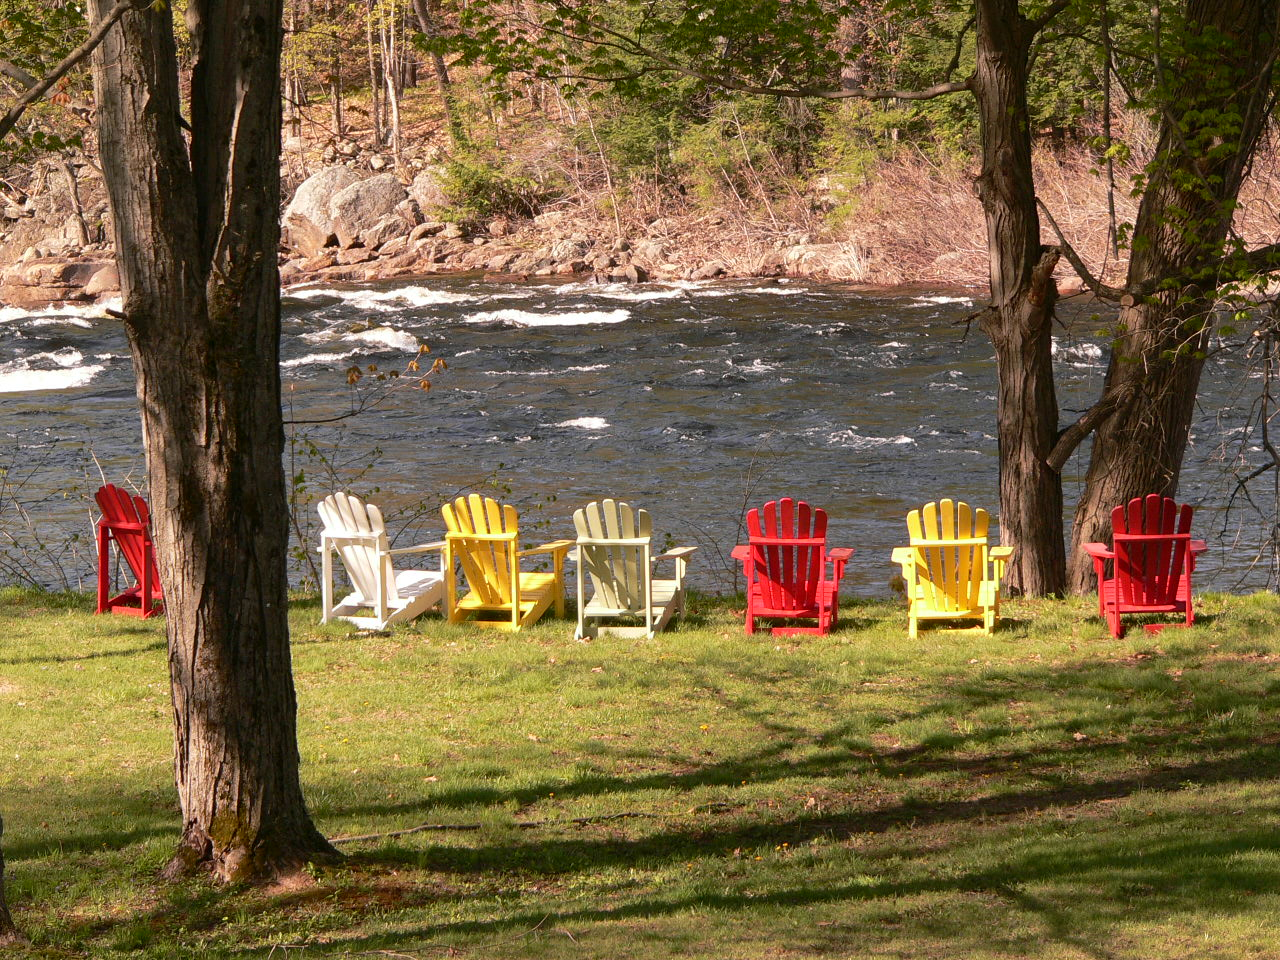 panaramio shot of the hudson with adirondack chairs at lake luzerne